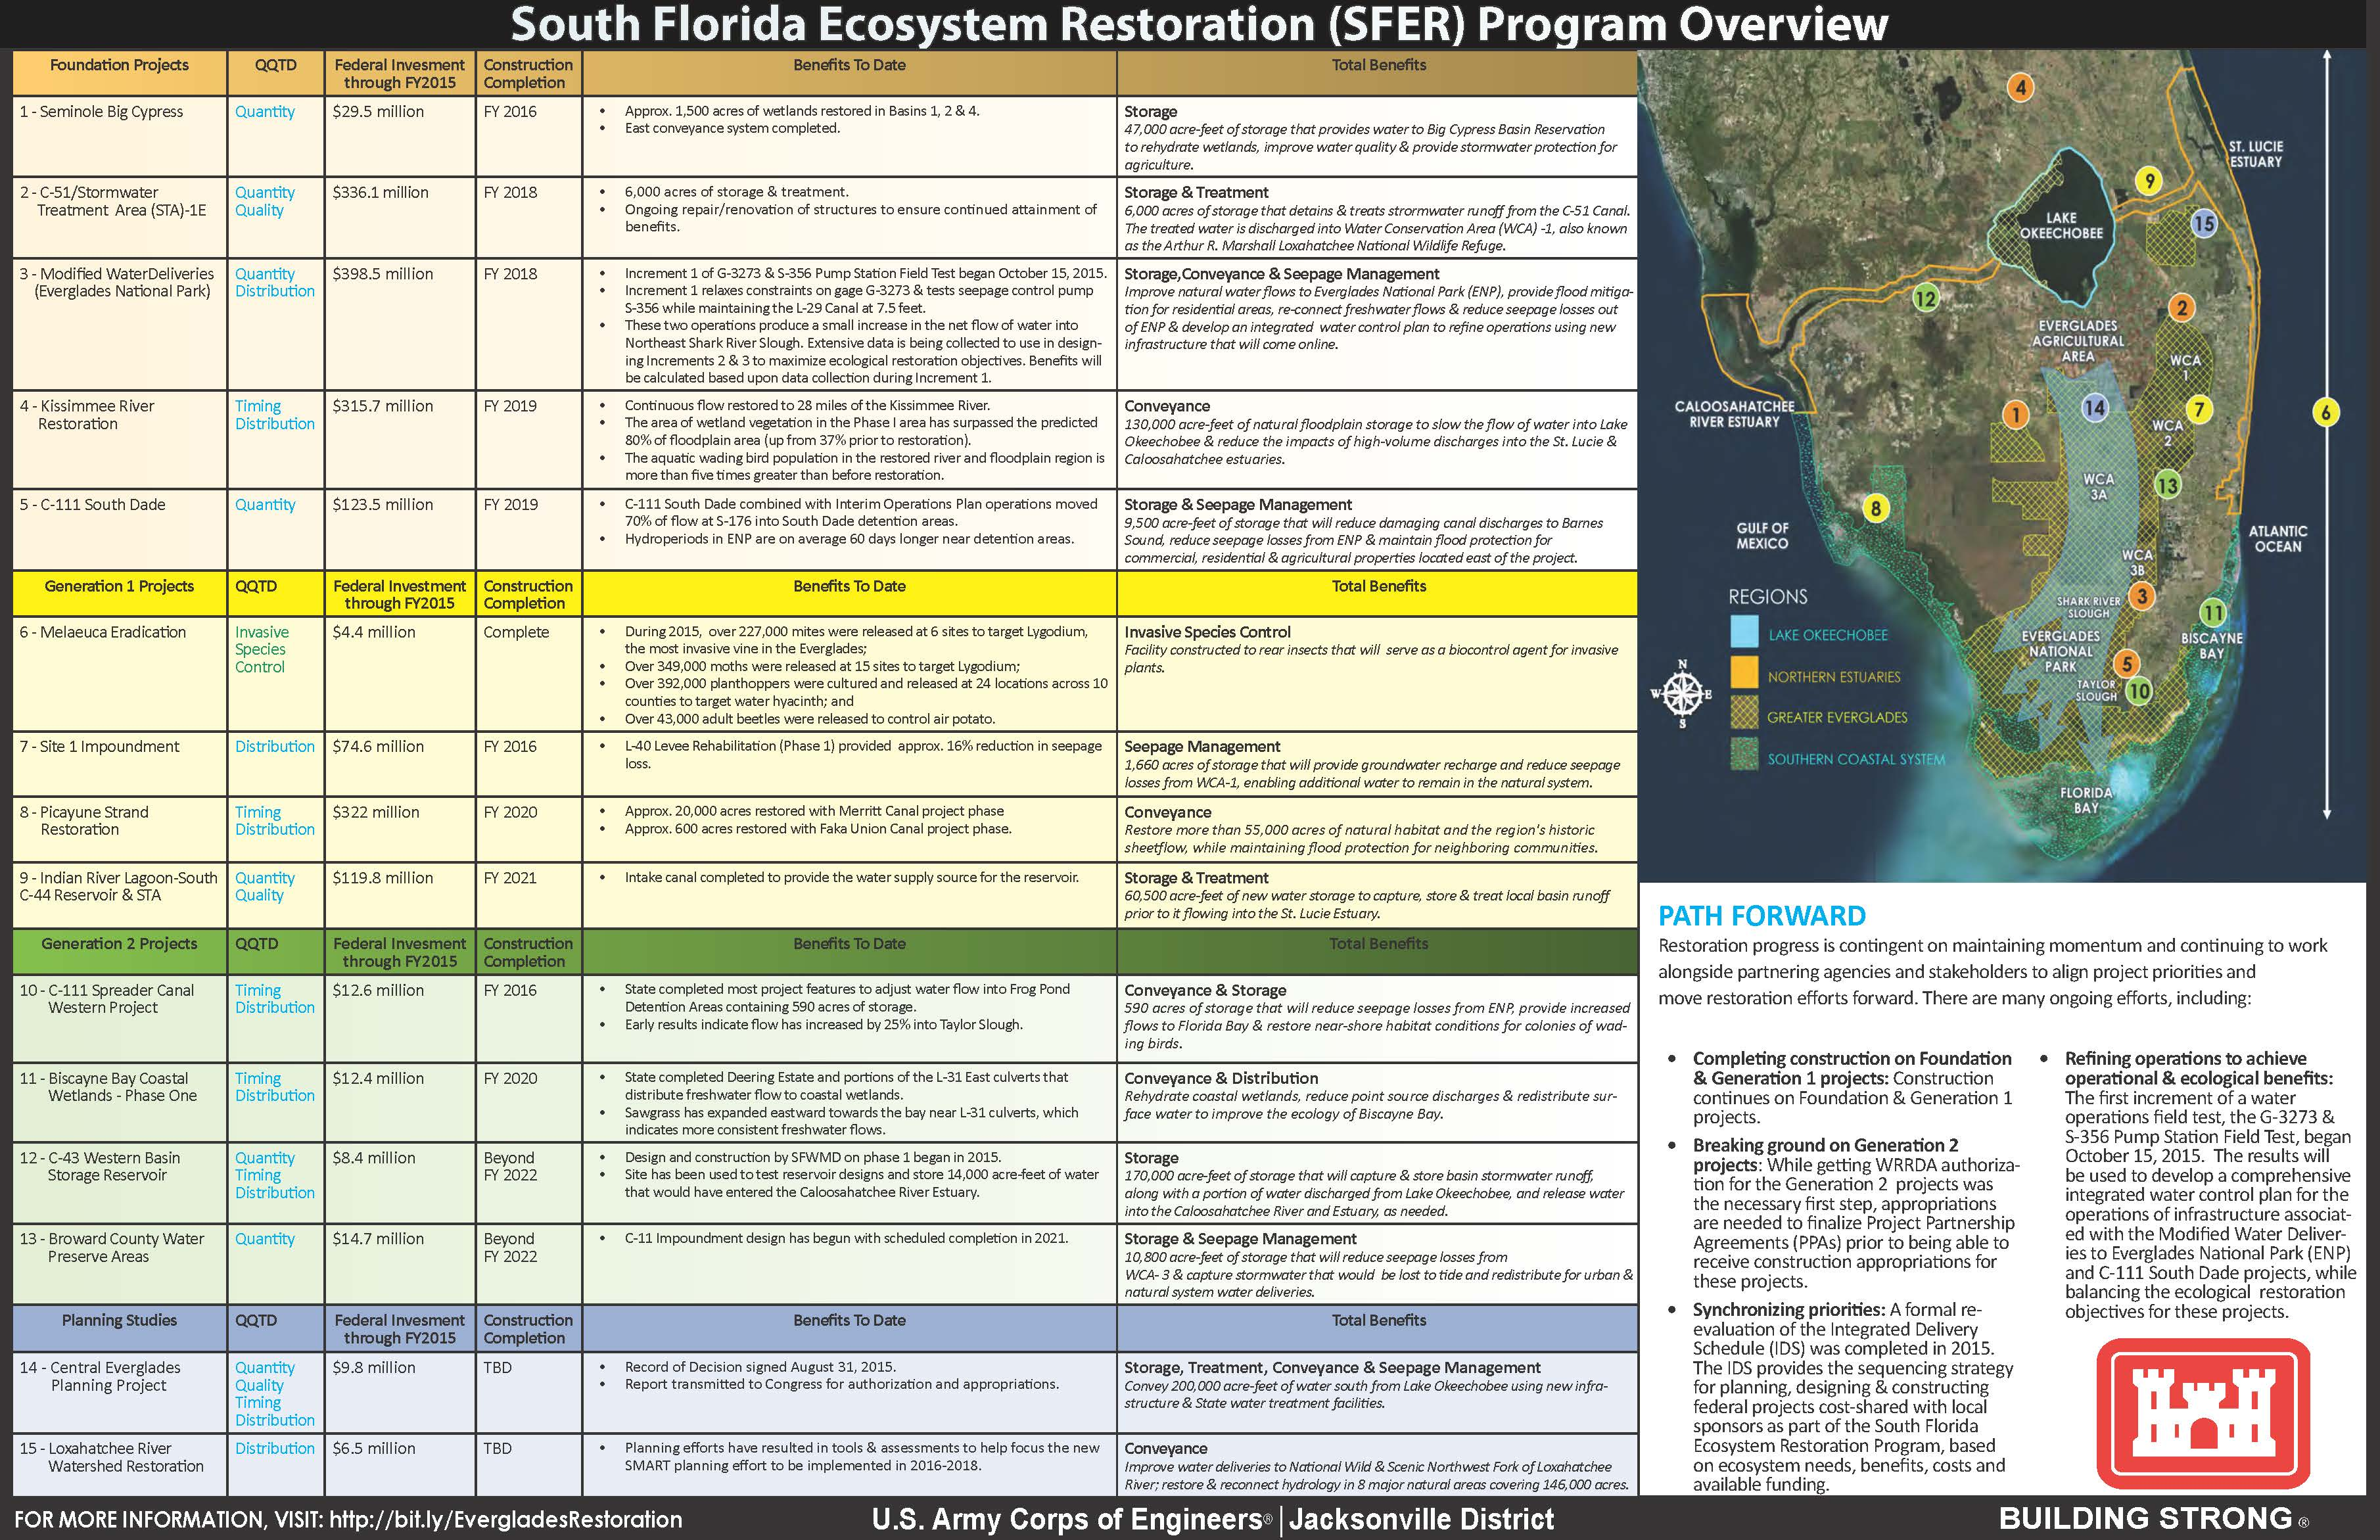 South Florida Ecosystem Restoration Program Overview placemat